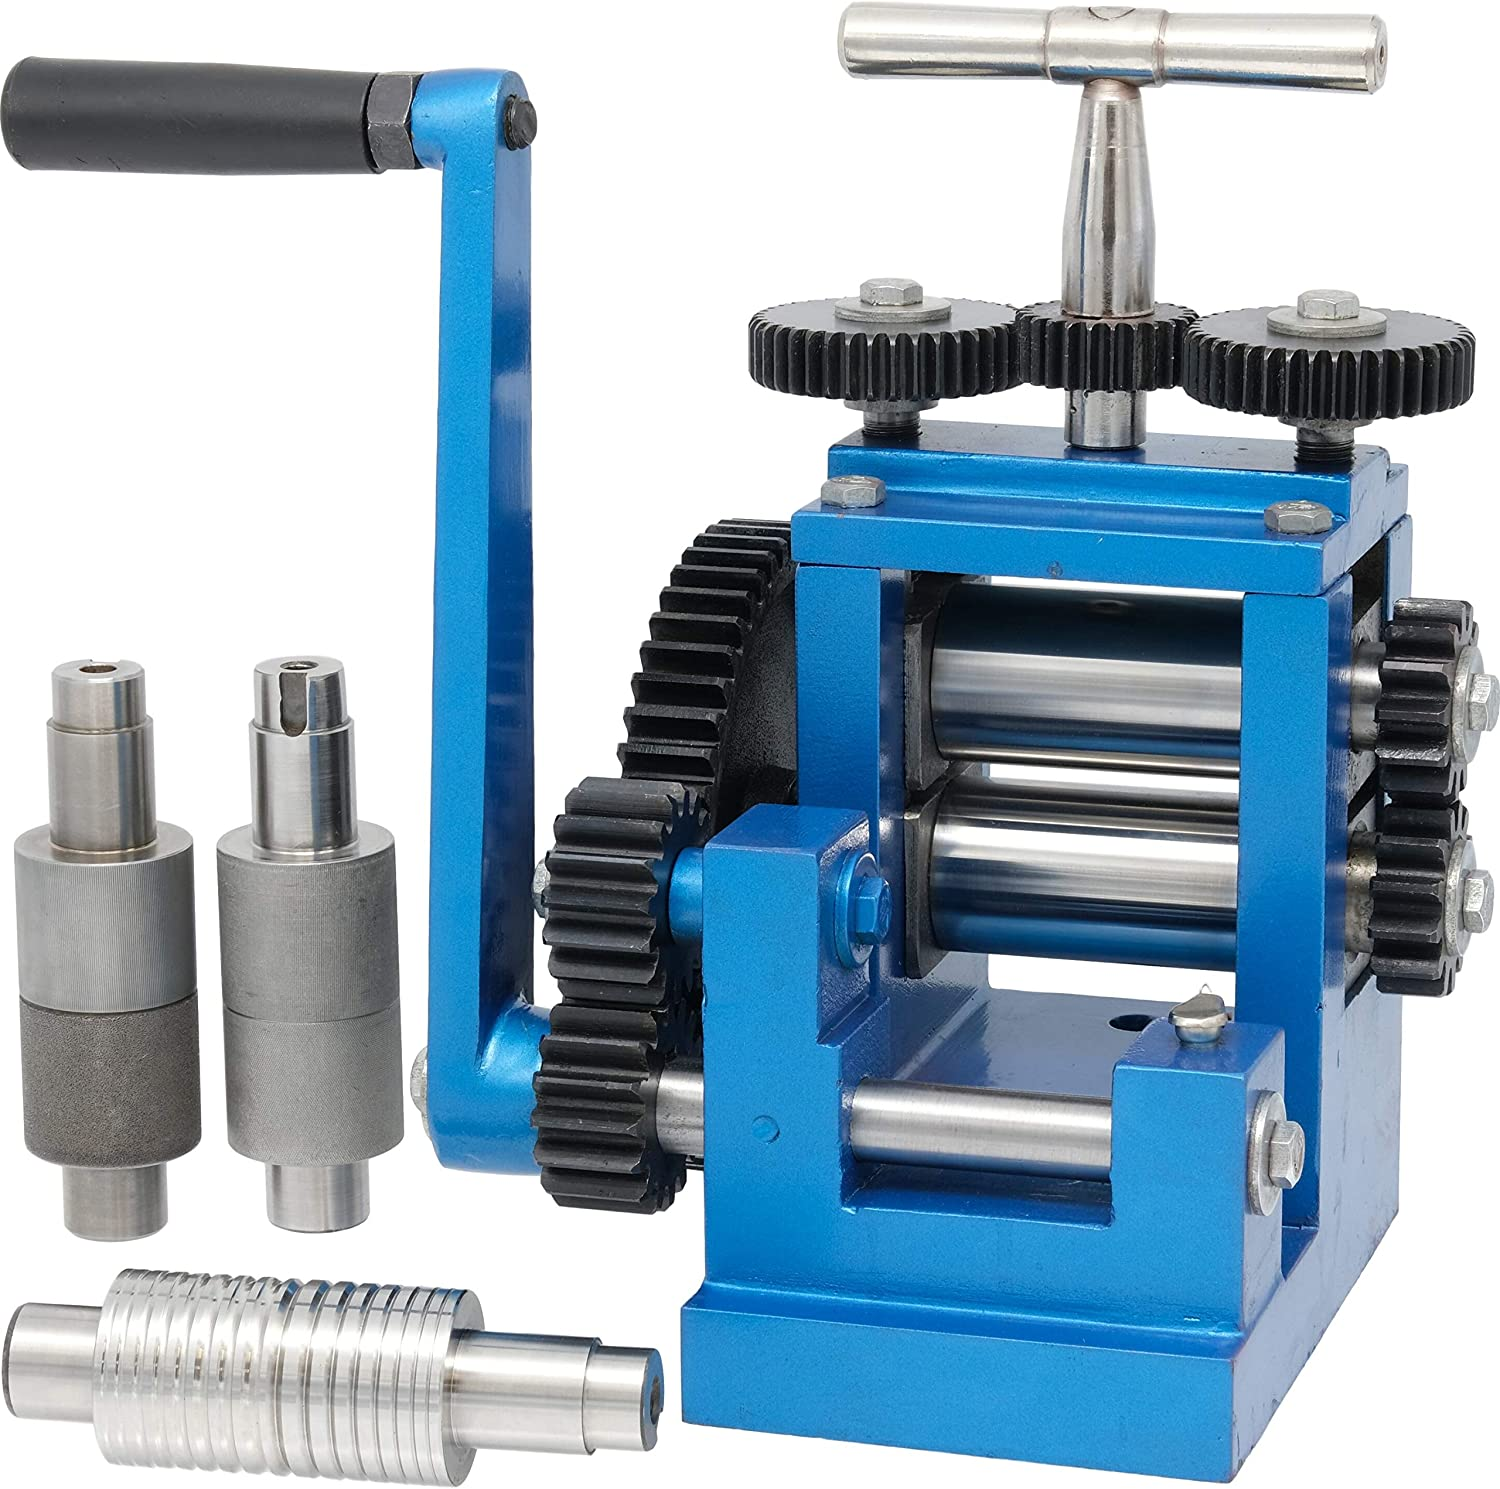 Amazon Com 3 80mm Rolling Mill 5 Metal Rollers Jewelers Tool Arts Crafts Sewing